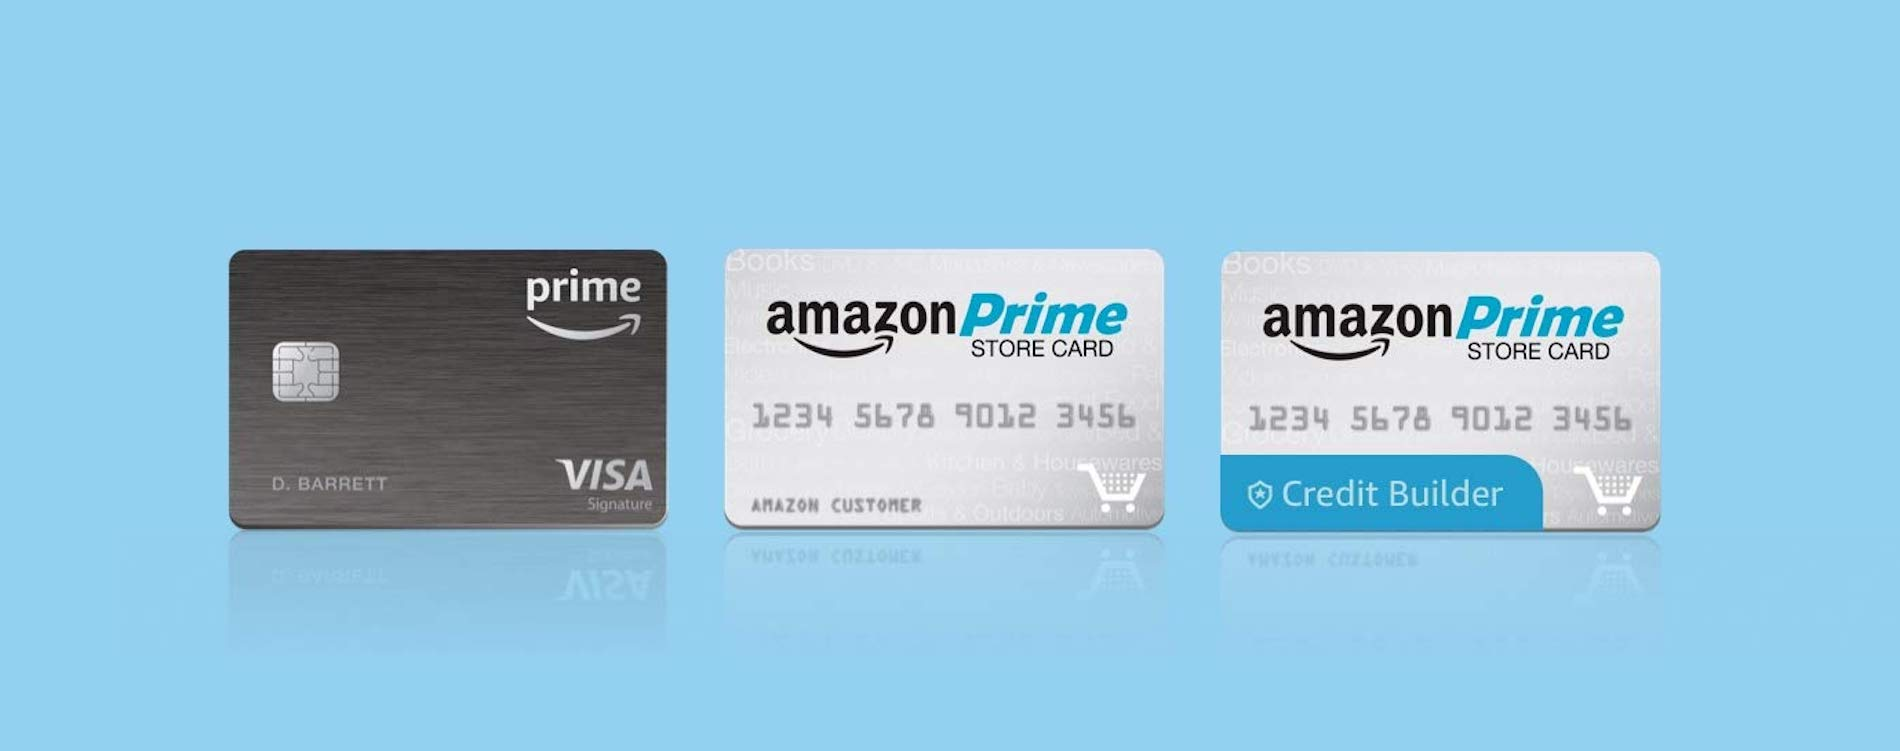 Amazon Teams with Synchrony Financial for New Secured Credit Card